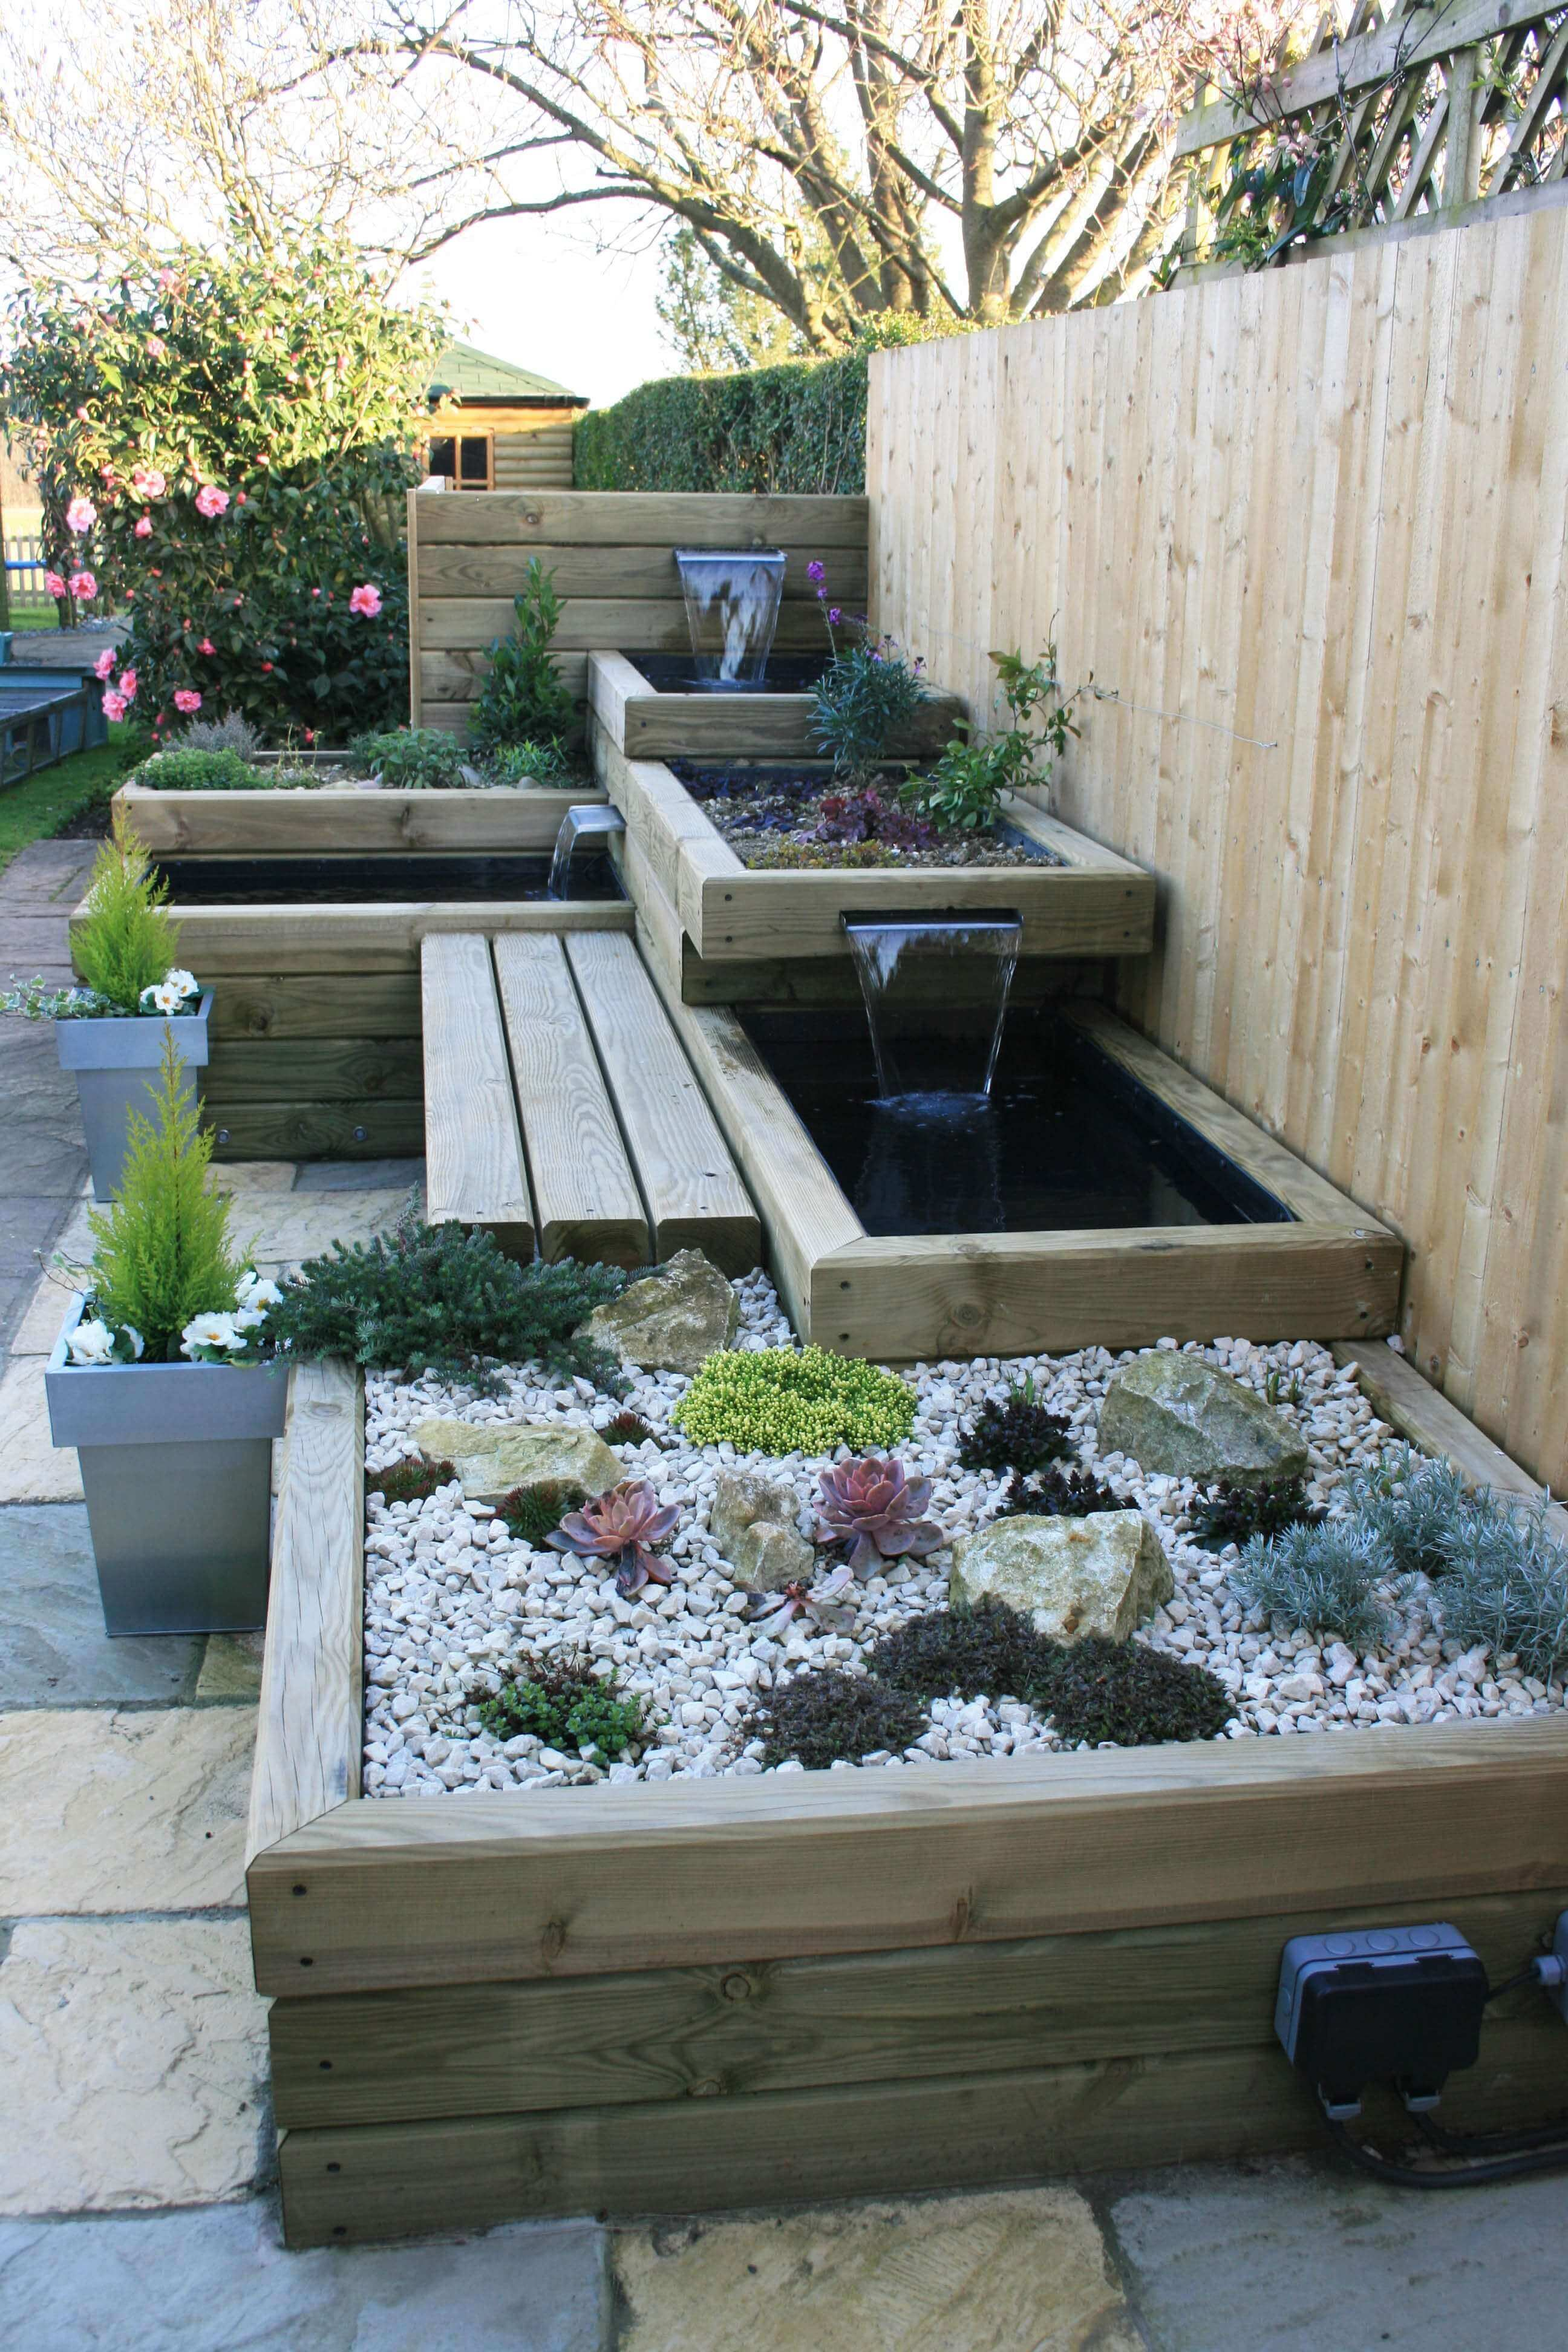 Raised beds give you so much more jacksons fencing for Channel 4 garden design ideas